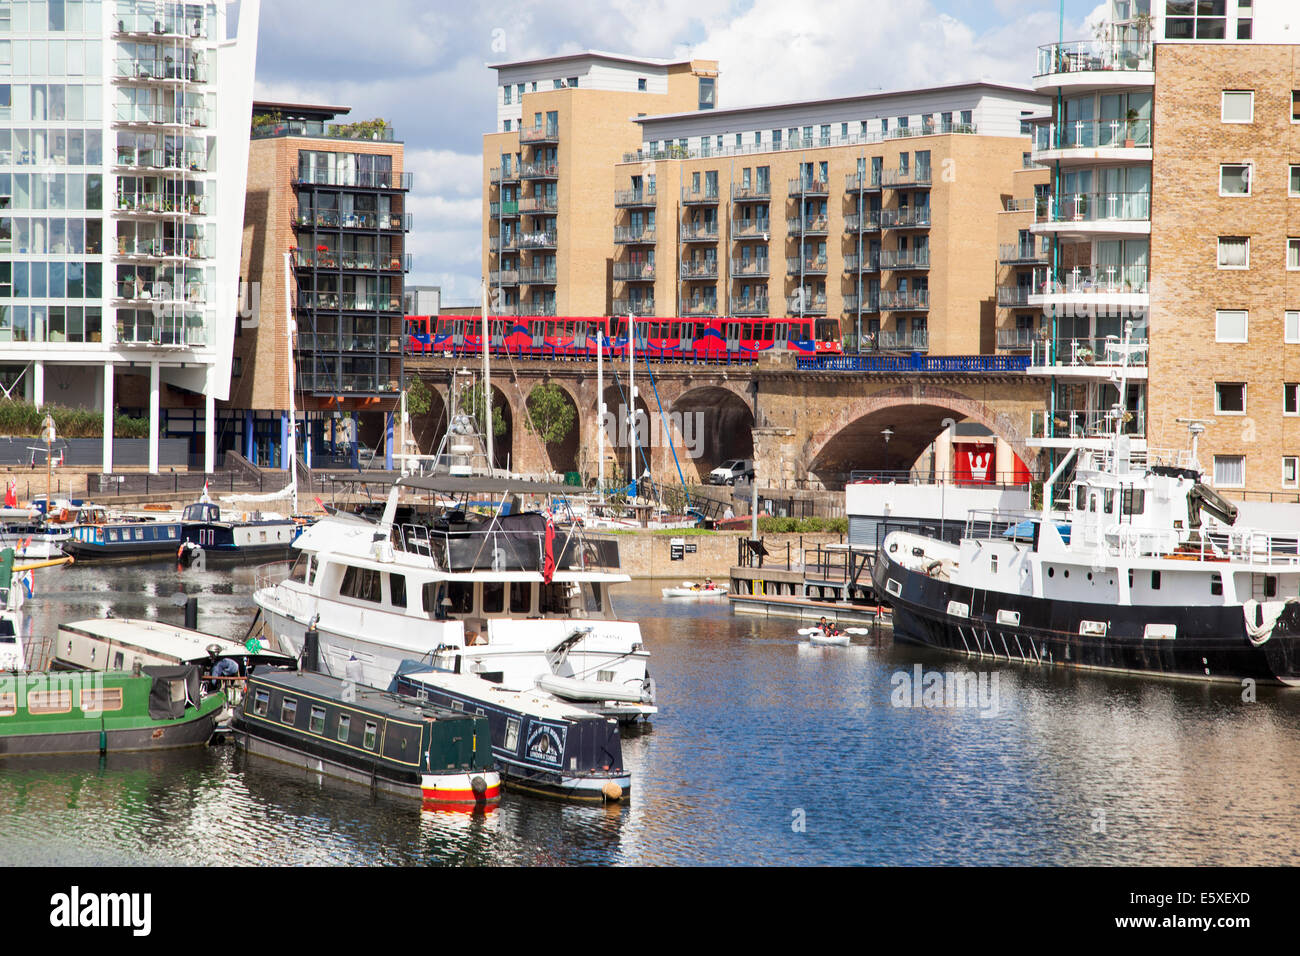 Limehouse Basin in East London on a sunny day - DLR train in the background, Pinnacle I building on the left and Stock Photo